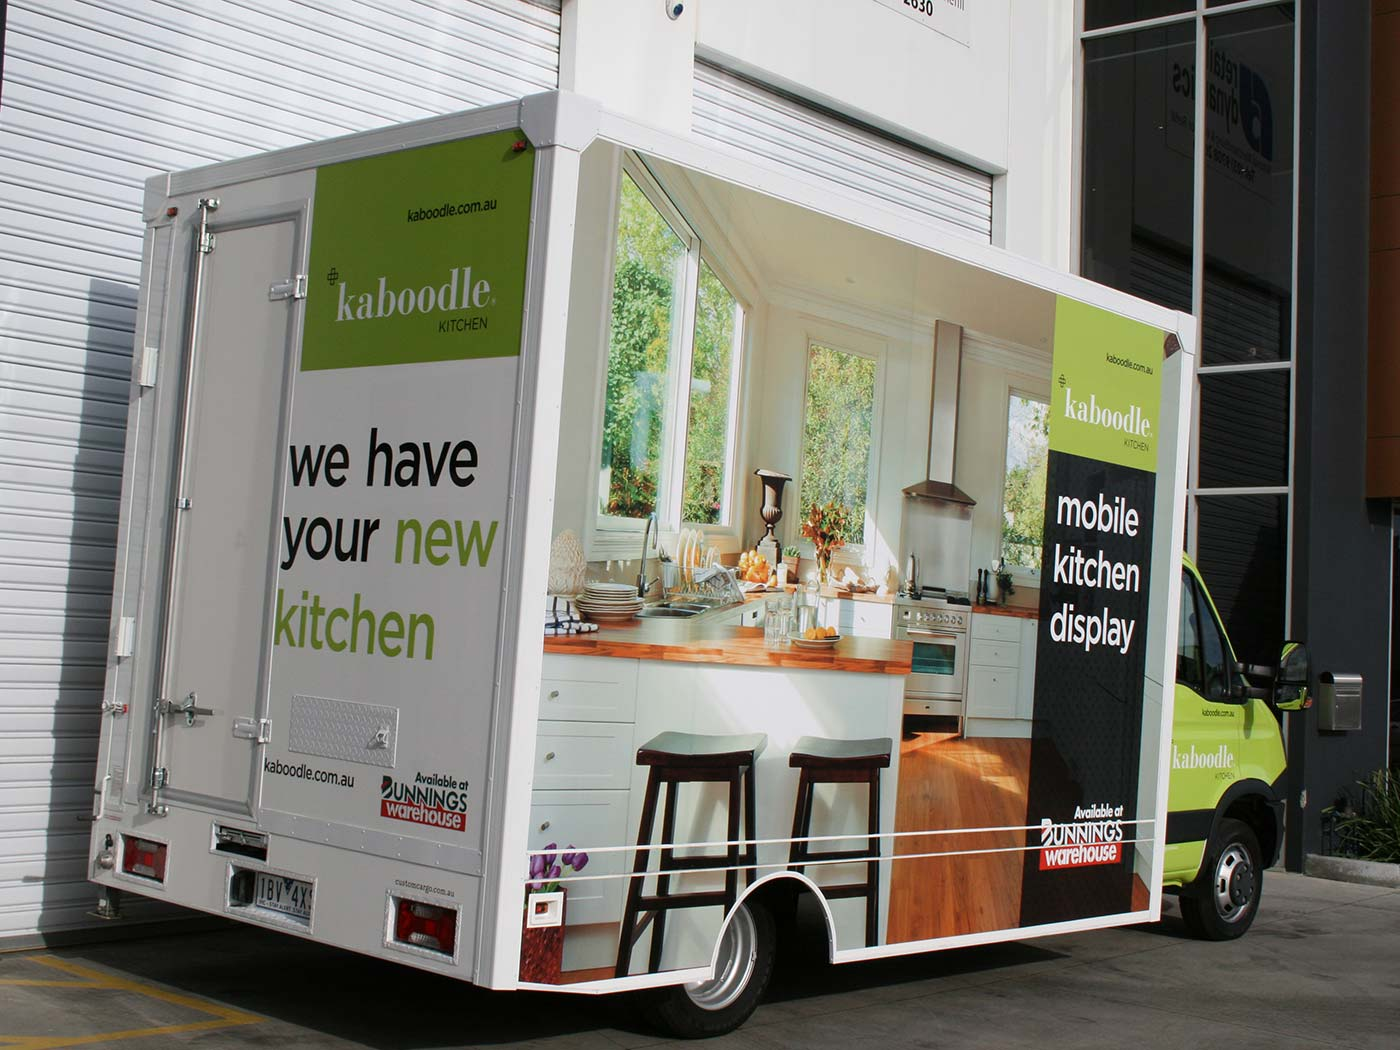 Kaboodle-Mobile-Kitchen-Display-2